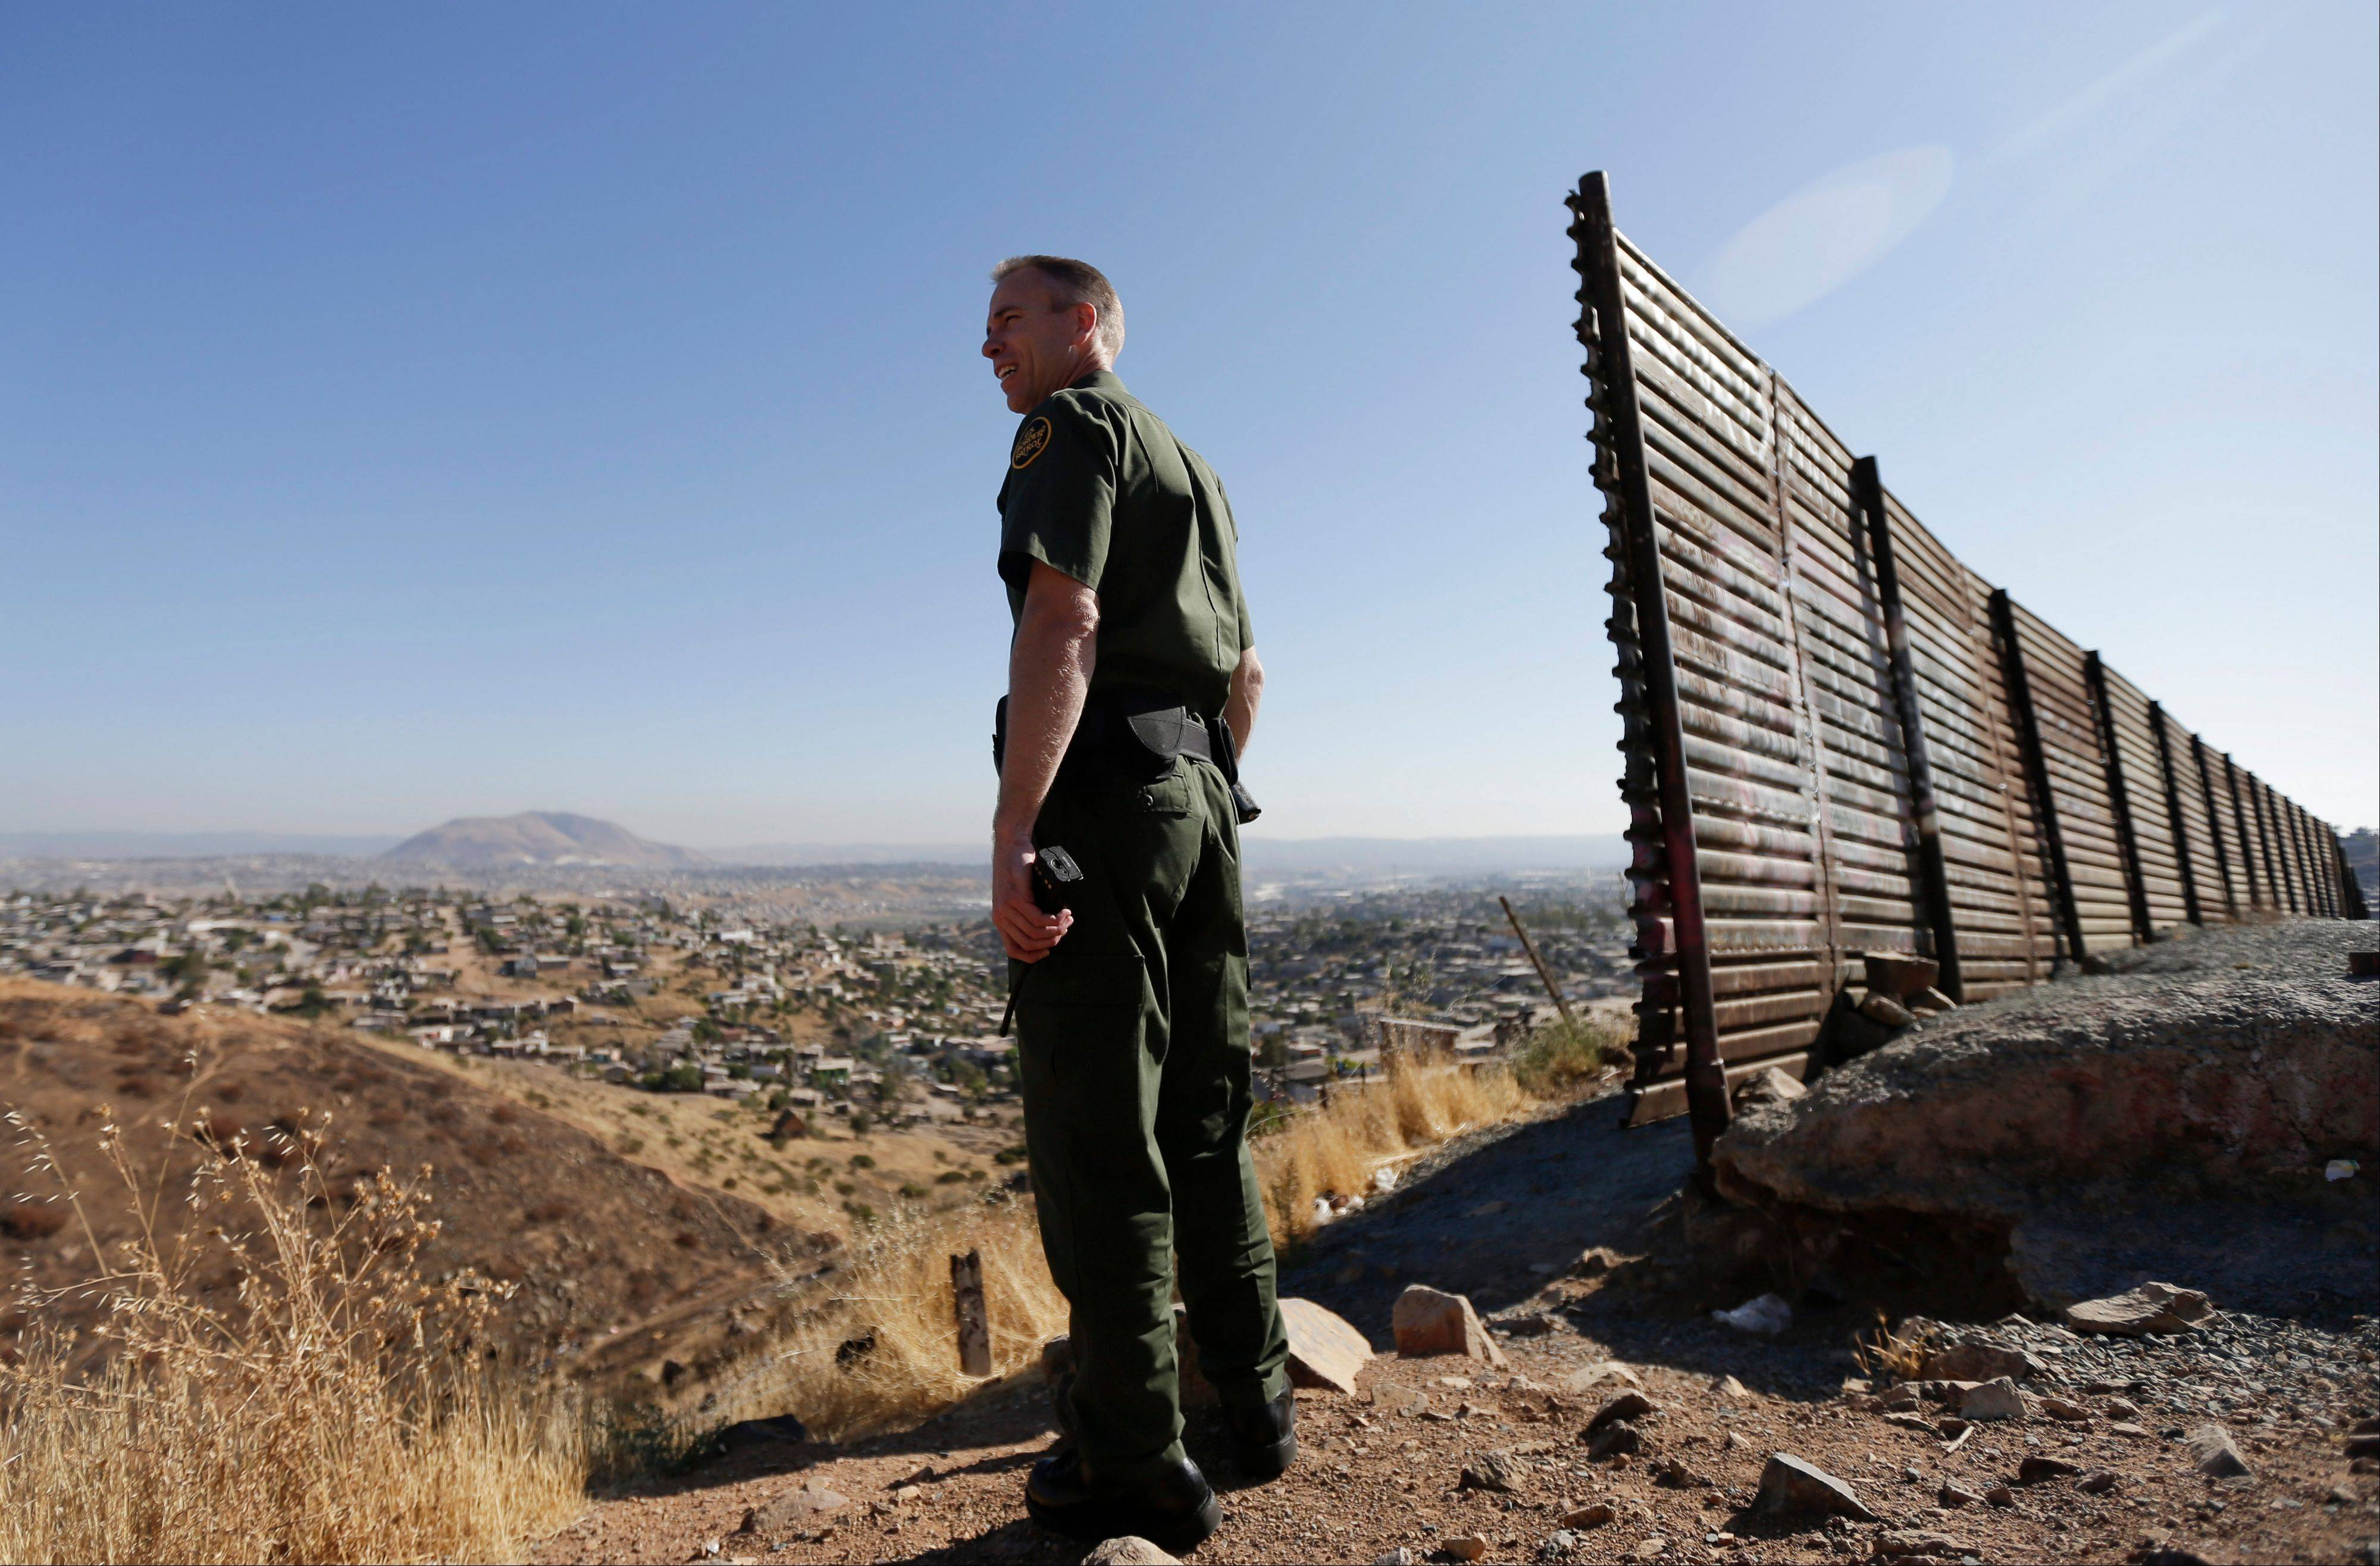 Associated PressIn this June 13, 2013 file photo, US Border Patrol agent Jerry Conlin looks out over Tijuana, Mexico, behind, along the old border wall along the US - Mexico border, where it ends at the base of a hill in San Diego. After dropping during the recession, the number of immigrants crossing the border illegally into the U.S. appears to be on the rise again, according to a report released Monday, Sept. 23, 2013 by Pew Research Center's Hispanic Trends Project.